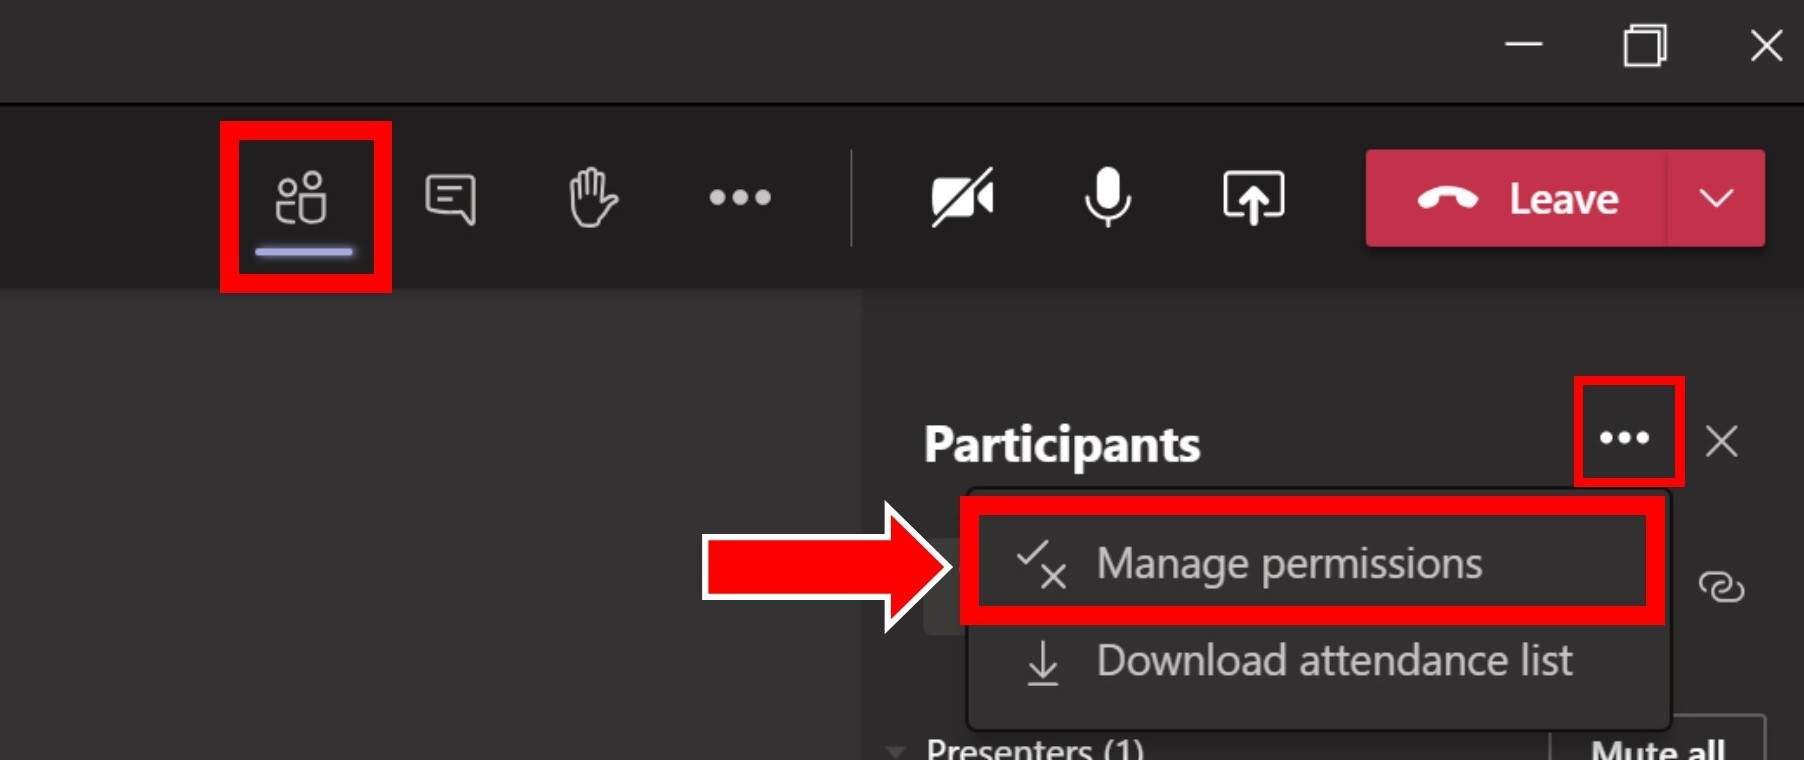 Image showing how to change participant settings